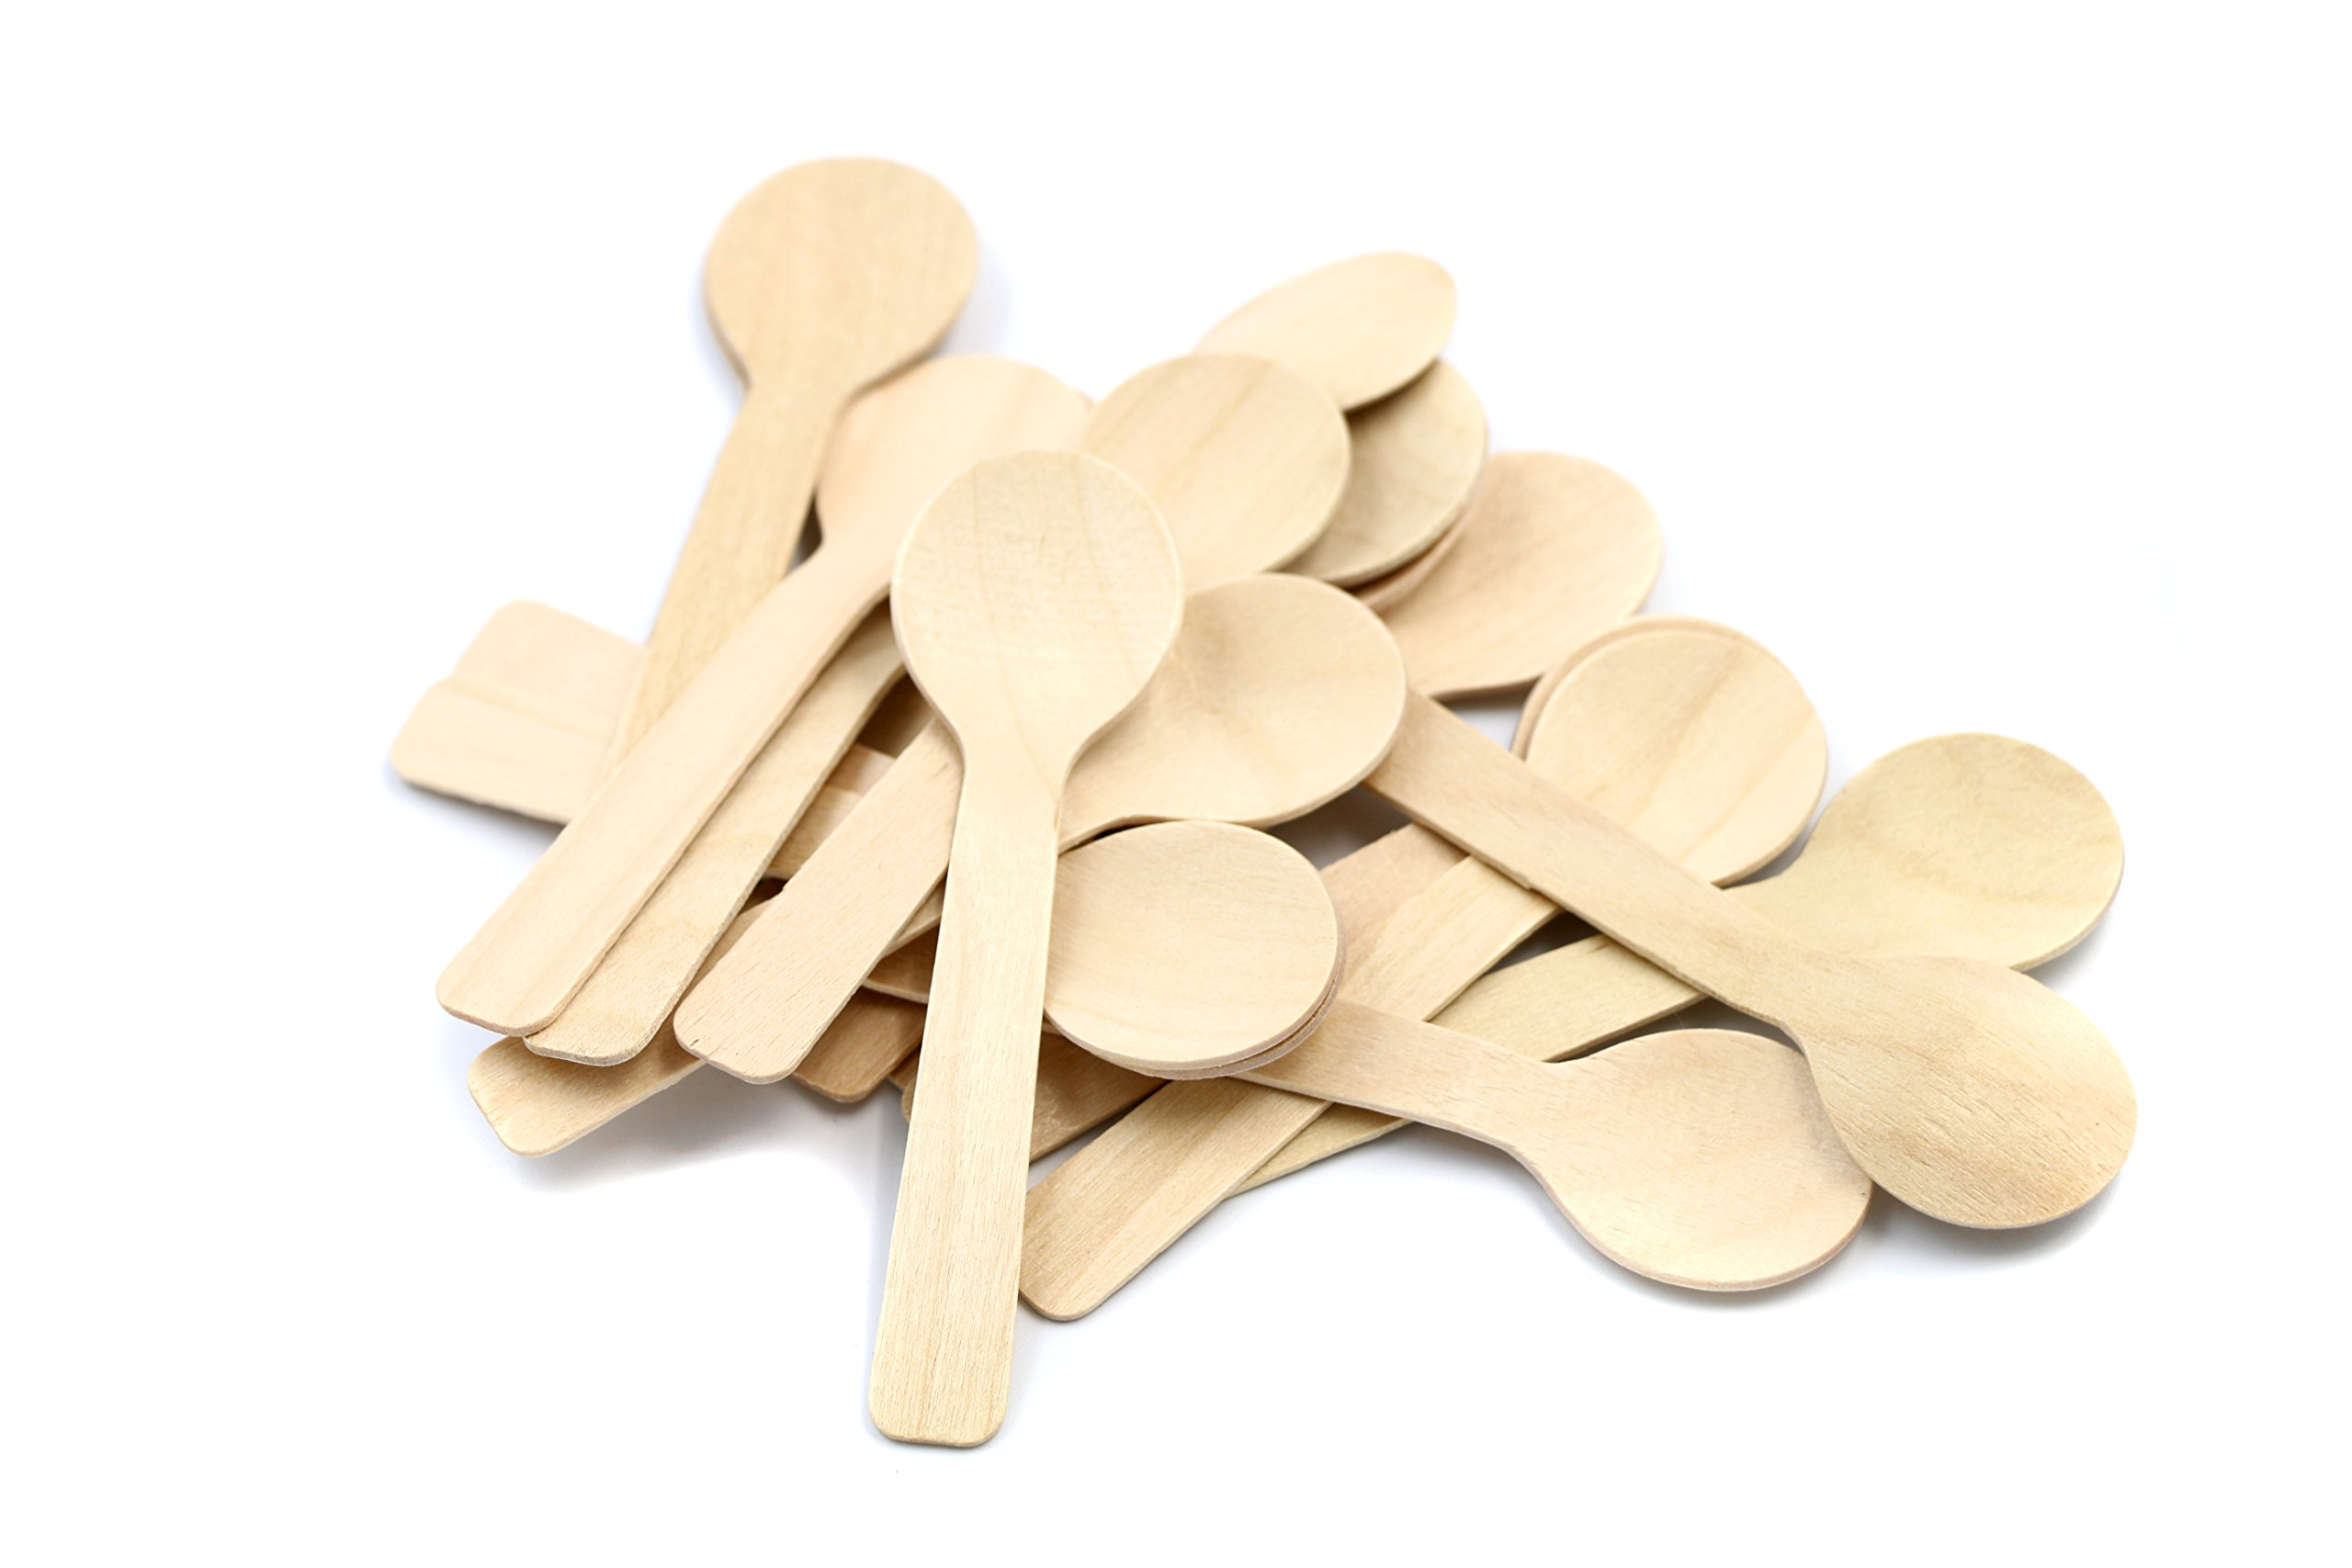 COOBL 3.9 Inches Mini Kitchen Wooden Ice Cream Dessert Spoons Disposable Wood Cutlery Tableware ,Pack of 200